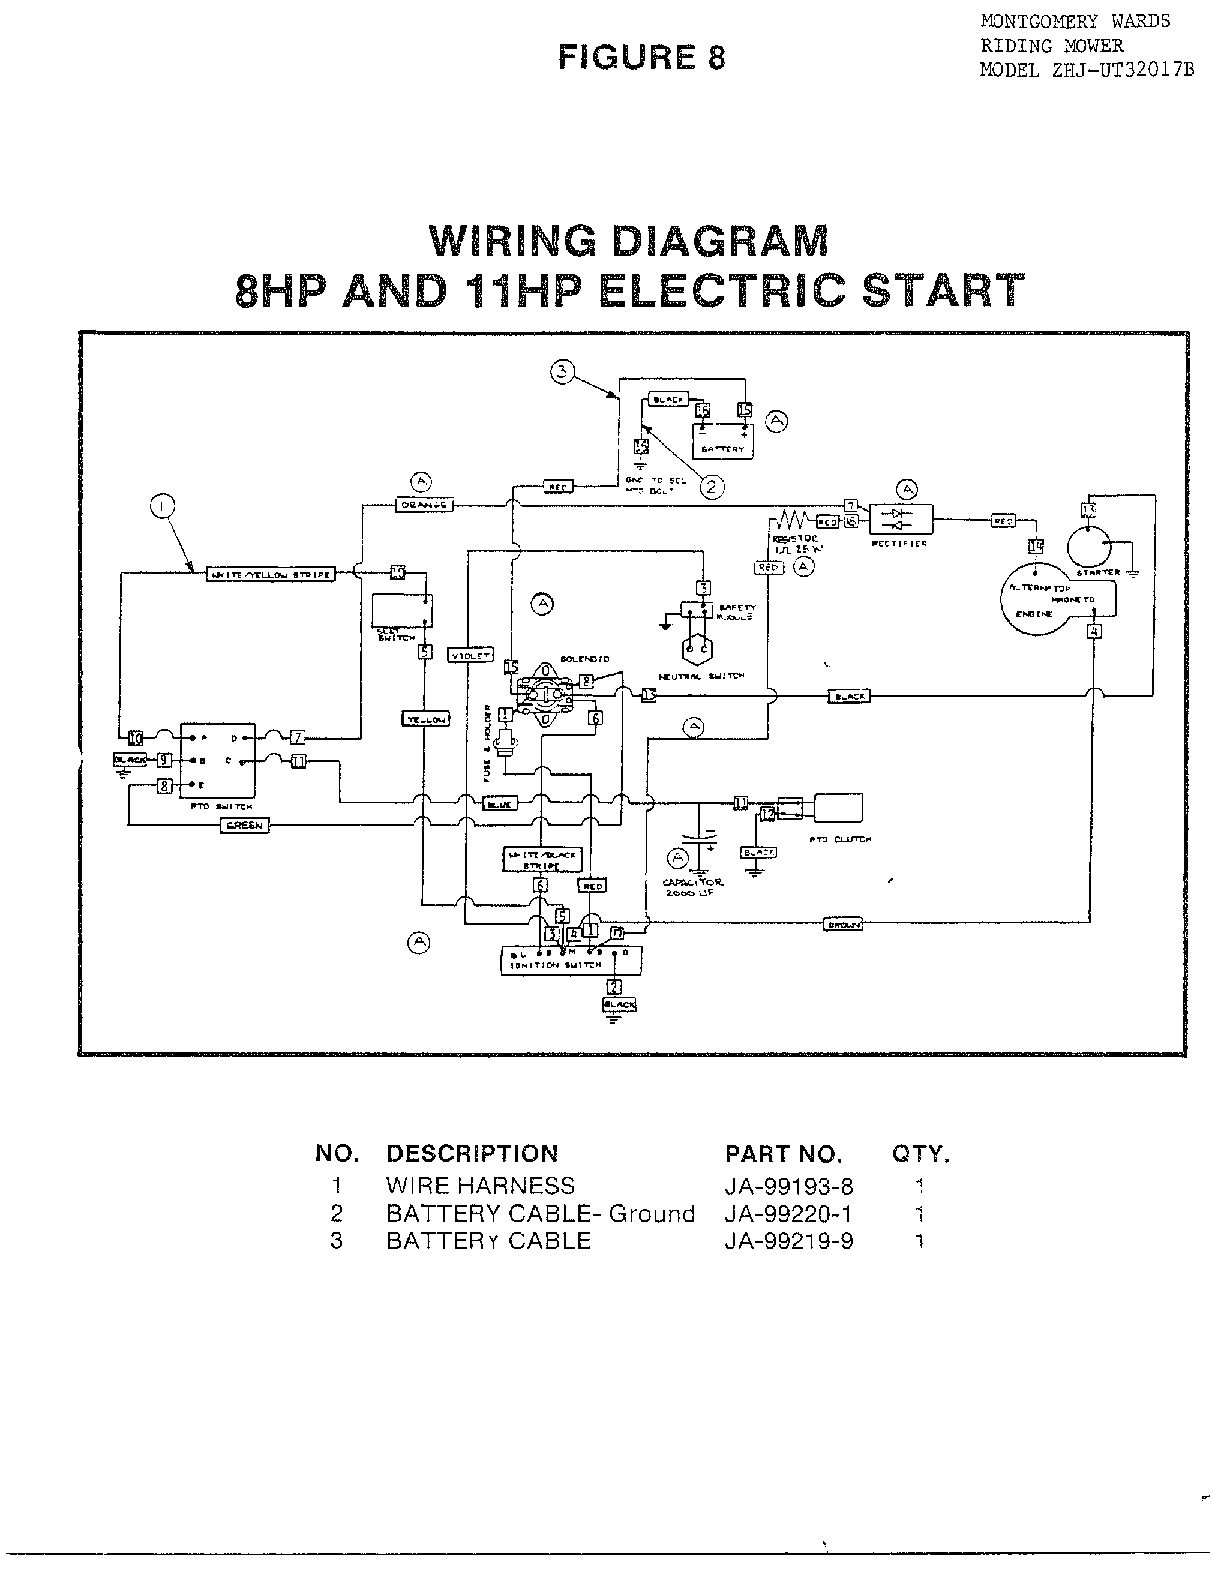 Superwinch Solenoid Wiring Diagram Reveolution Of Atv Winch Briggs And Stratton 11 Hp Best Site Harness